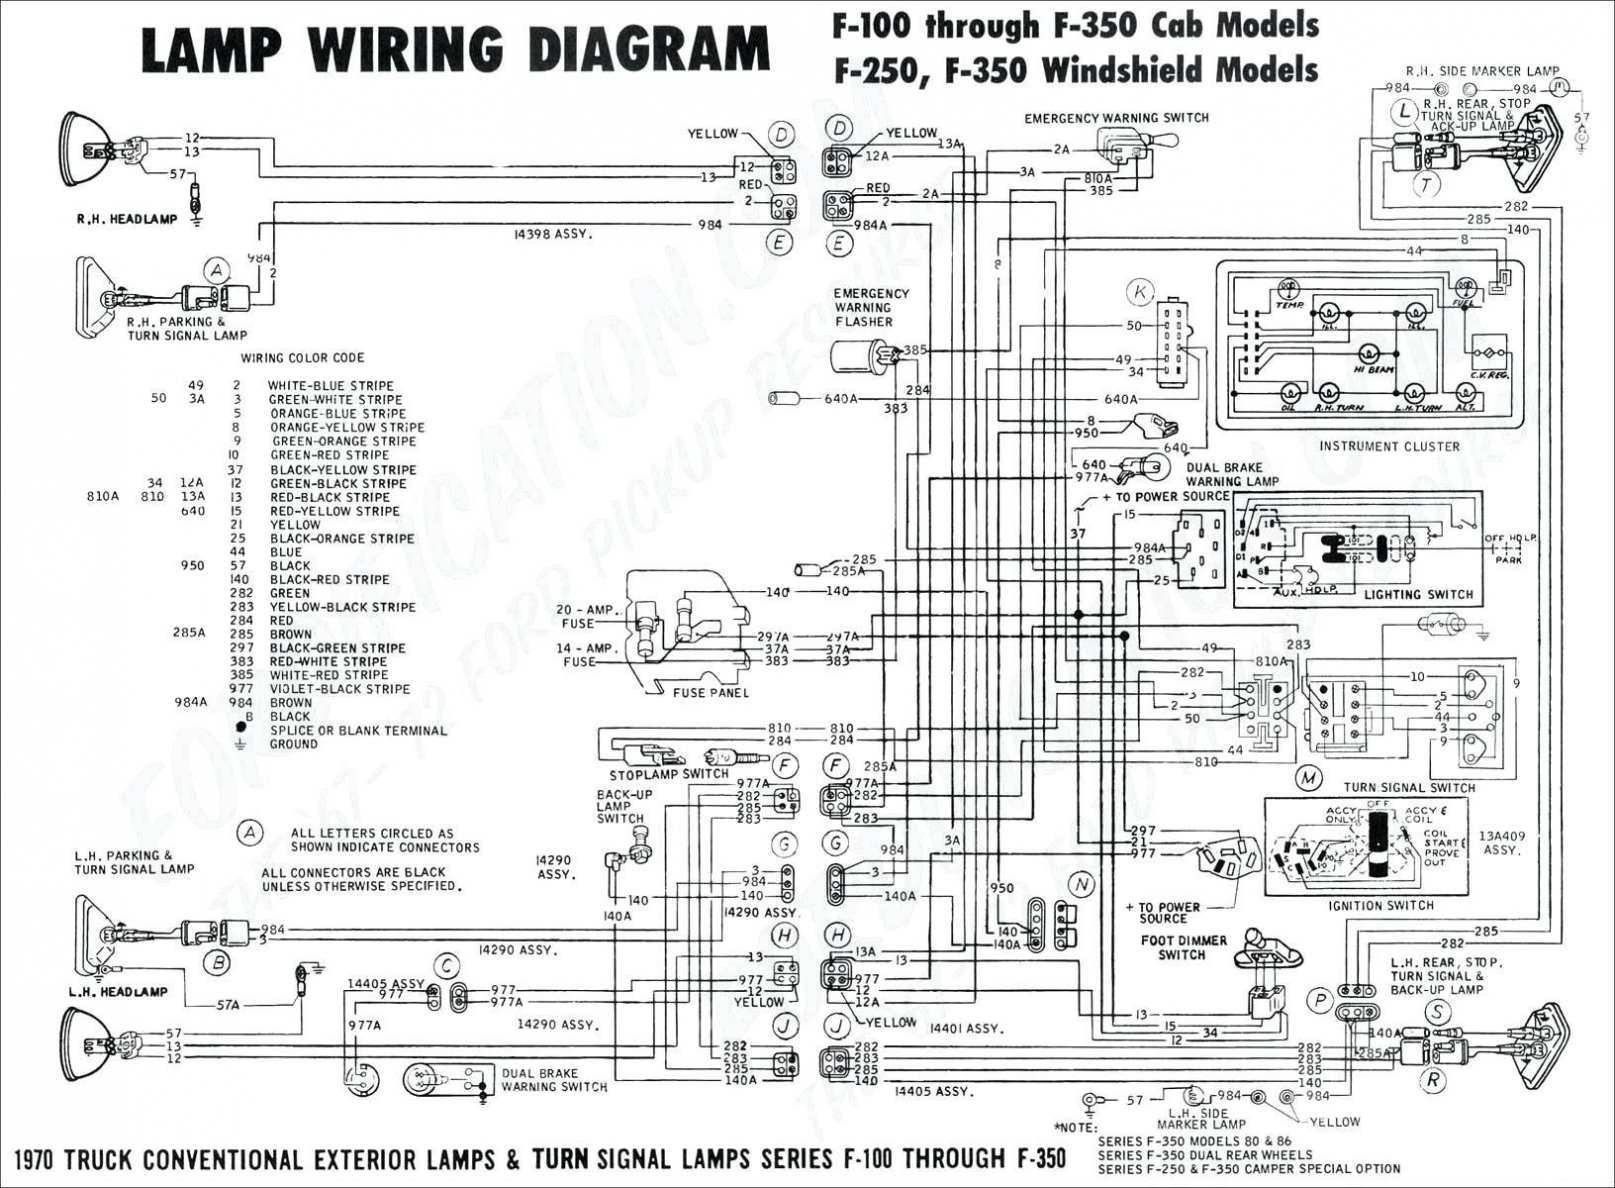 hight resolution of wiring diagram bose system 1993 eldorado wiring diagram mega 2001 cadillac eldorado wiring harness electrical wiring